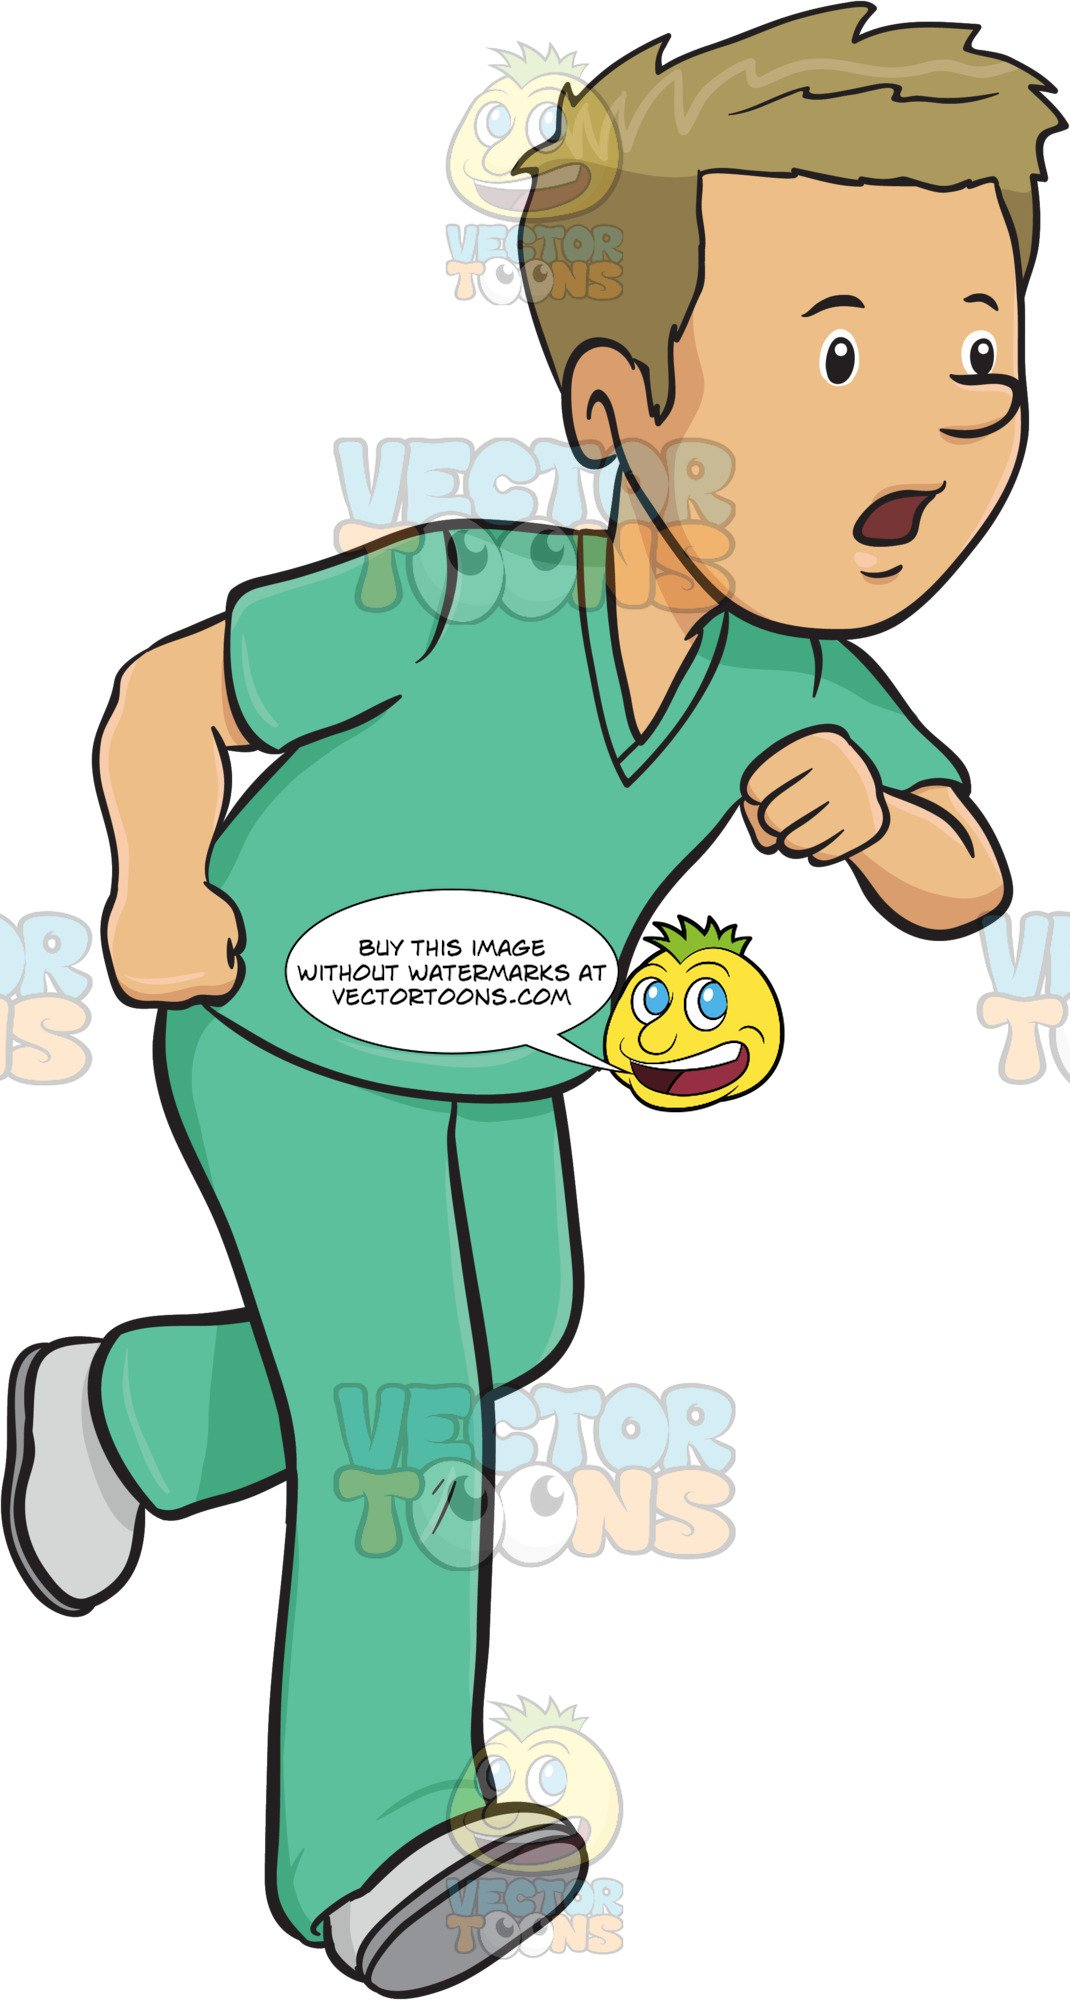 Medical scrubs clipart png black and white download Man In Medical Scrubs Rushes In A Hurry png black and white download